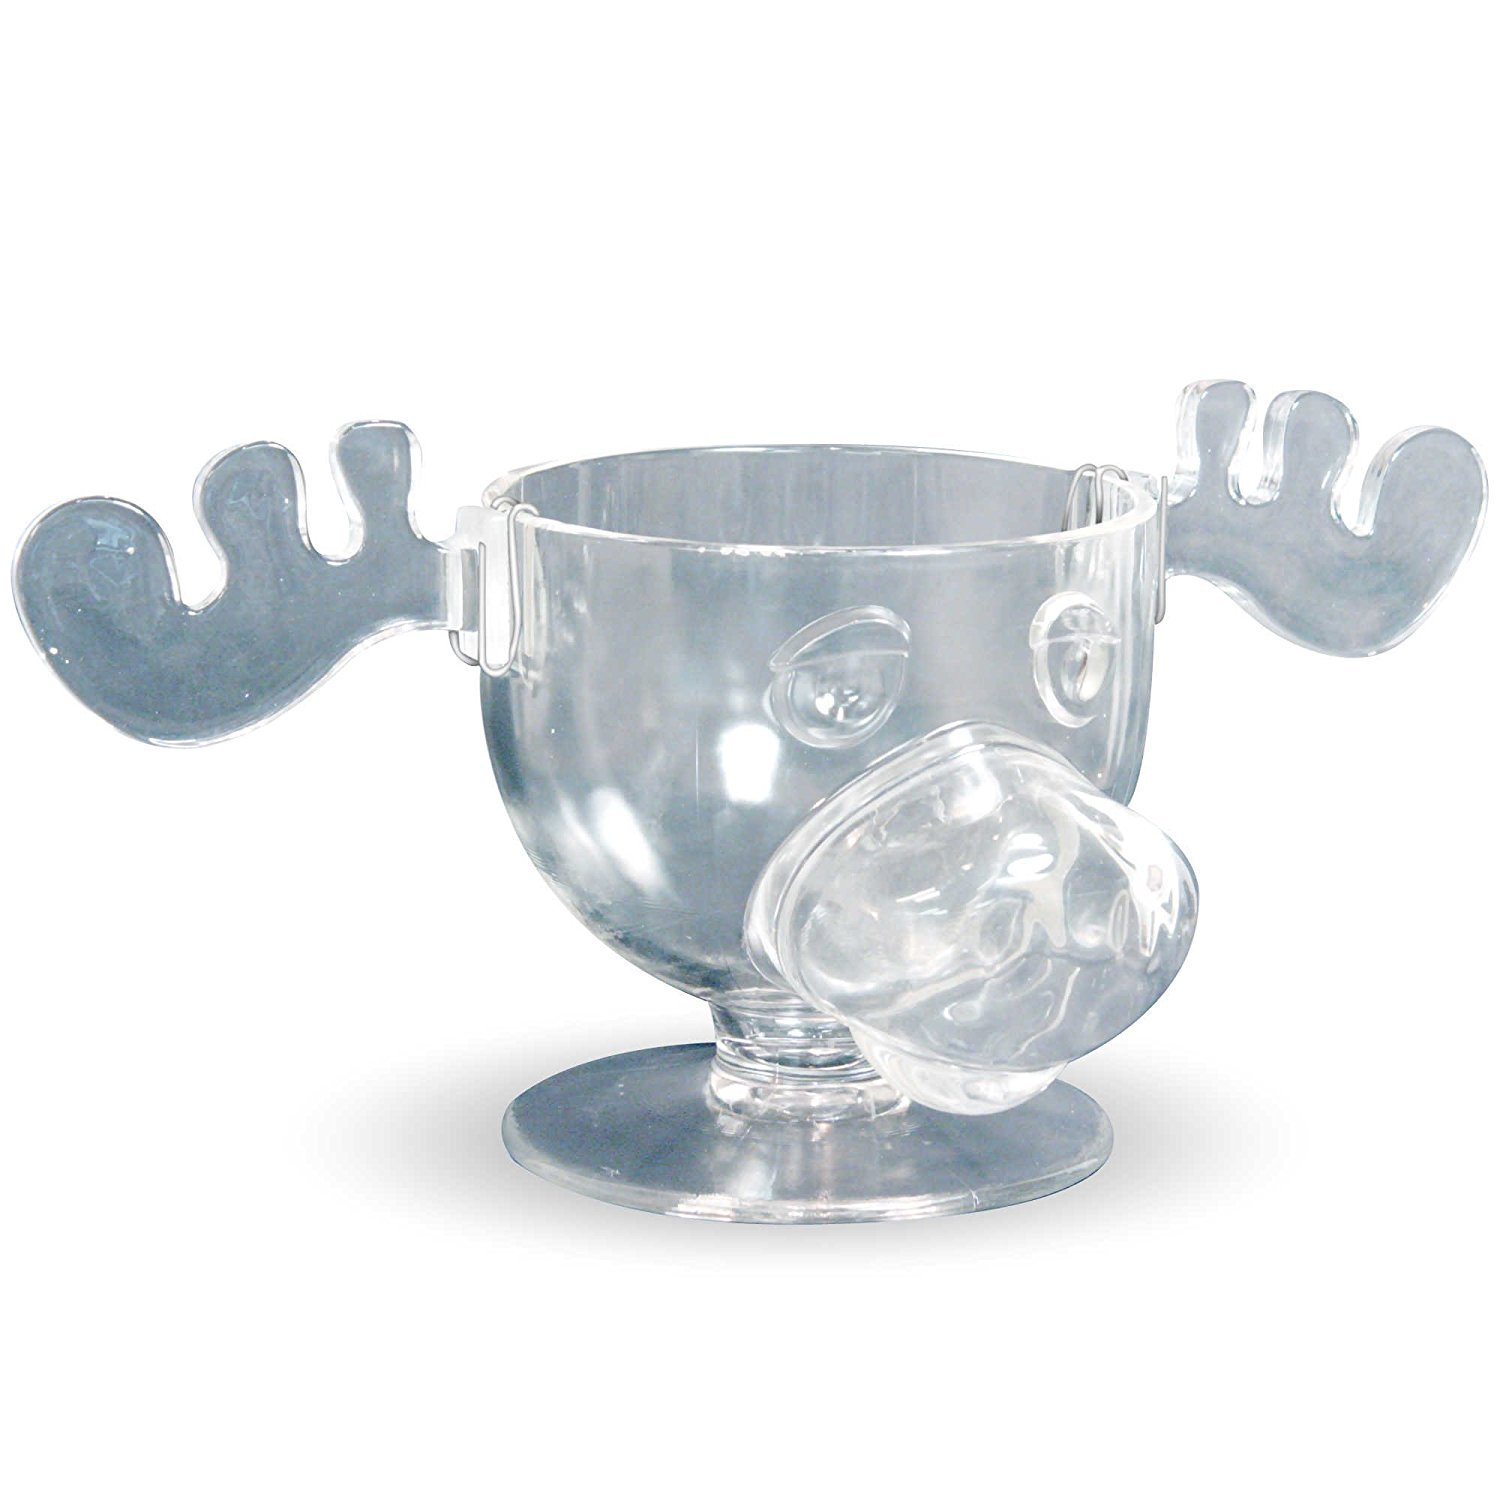 National Lampoons Christmas Vacation Moose Mug Glass Punch Bowl ICUP 10975